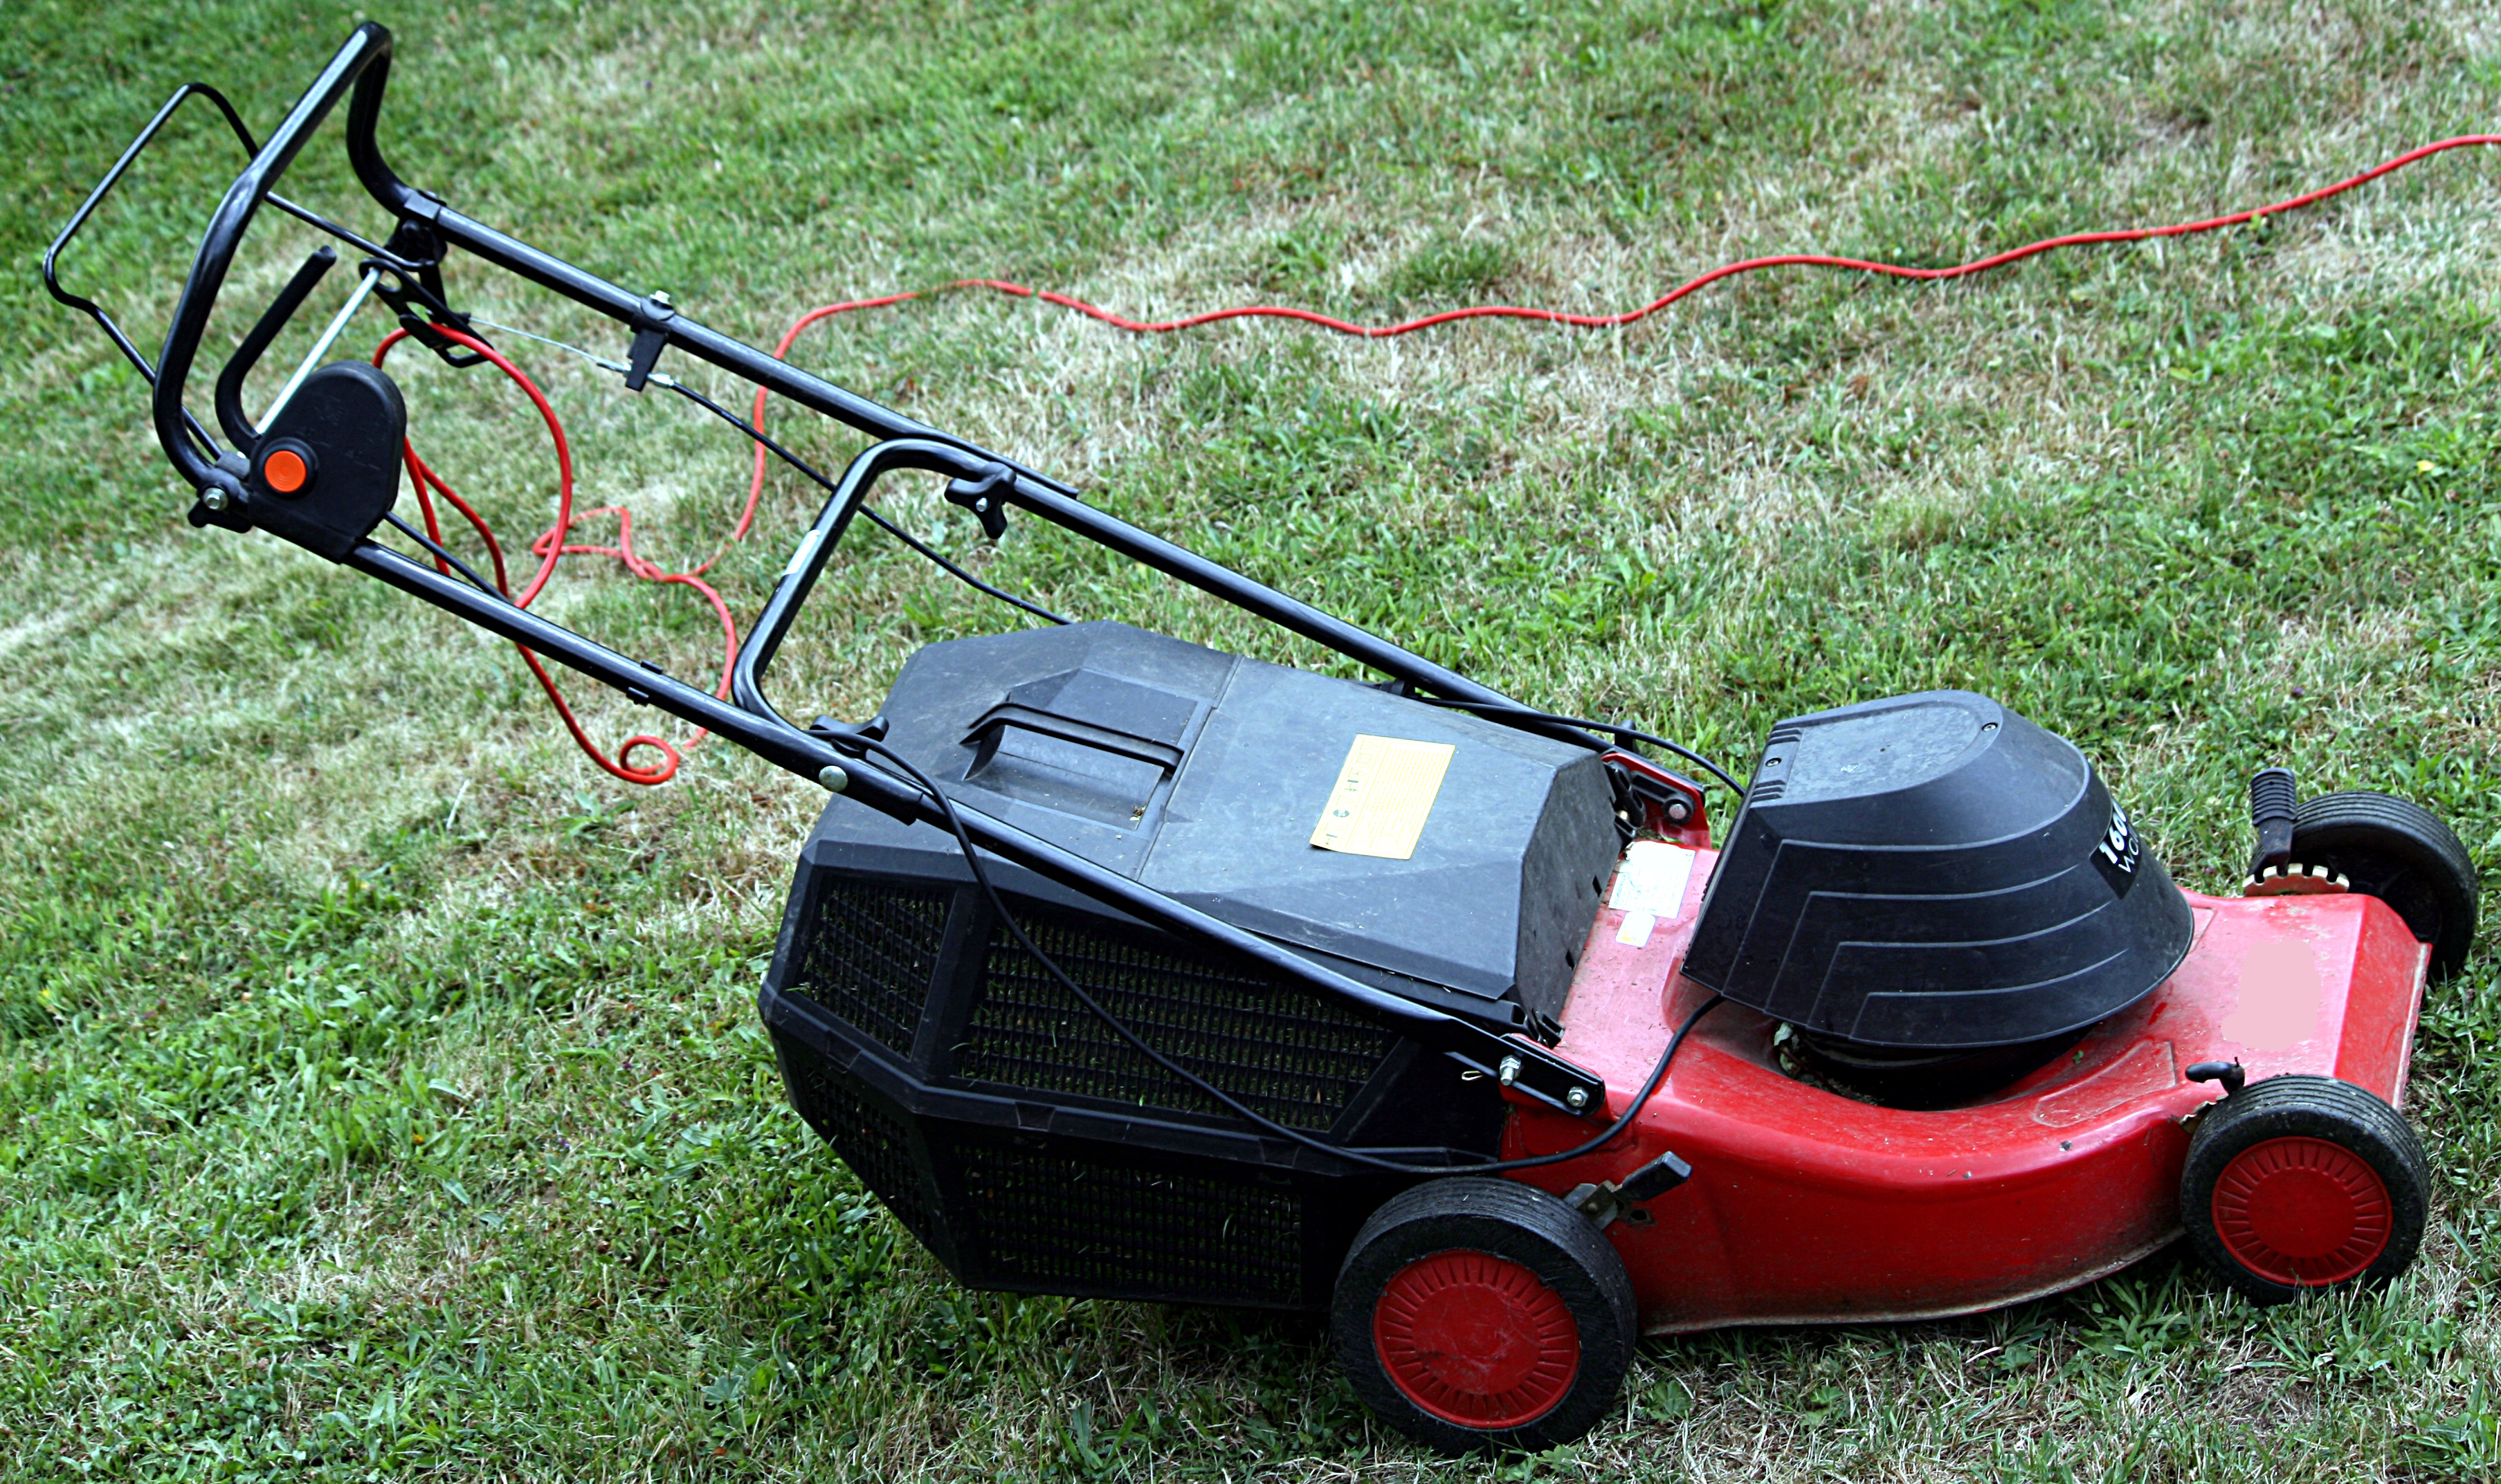 Lawn Mower Lawn Mowers Blog Archive Electric Lawn Mowers Lawn Mowers